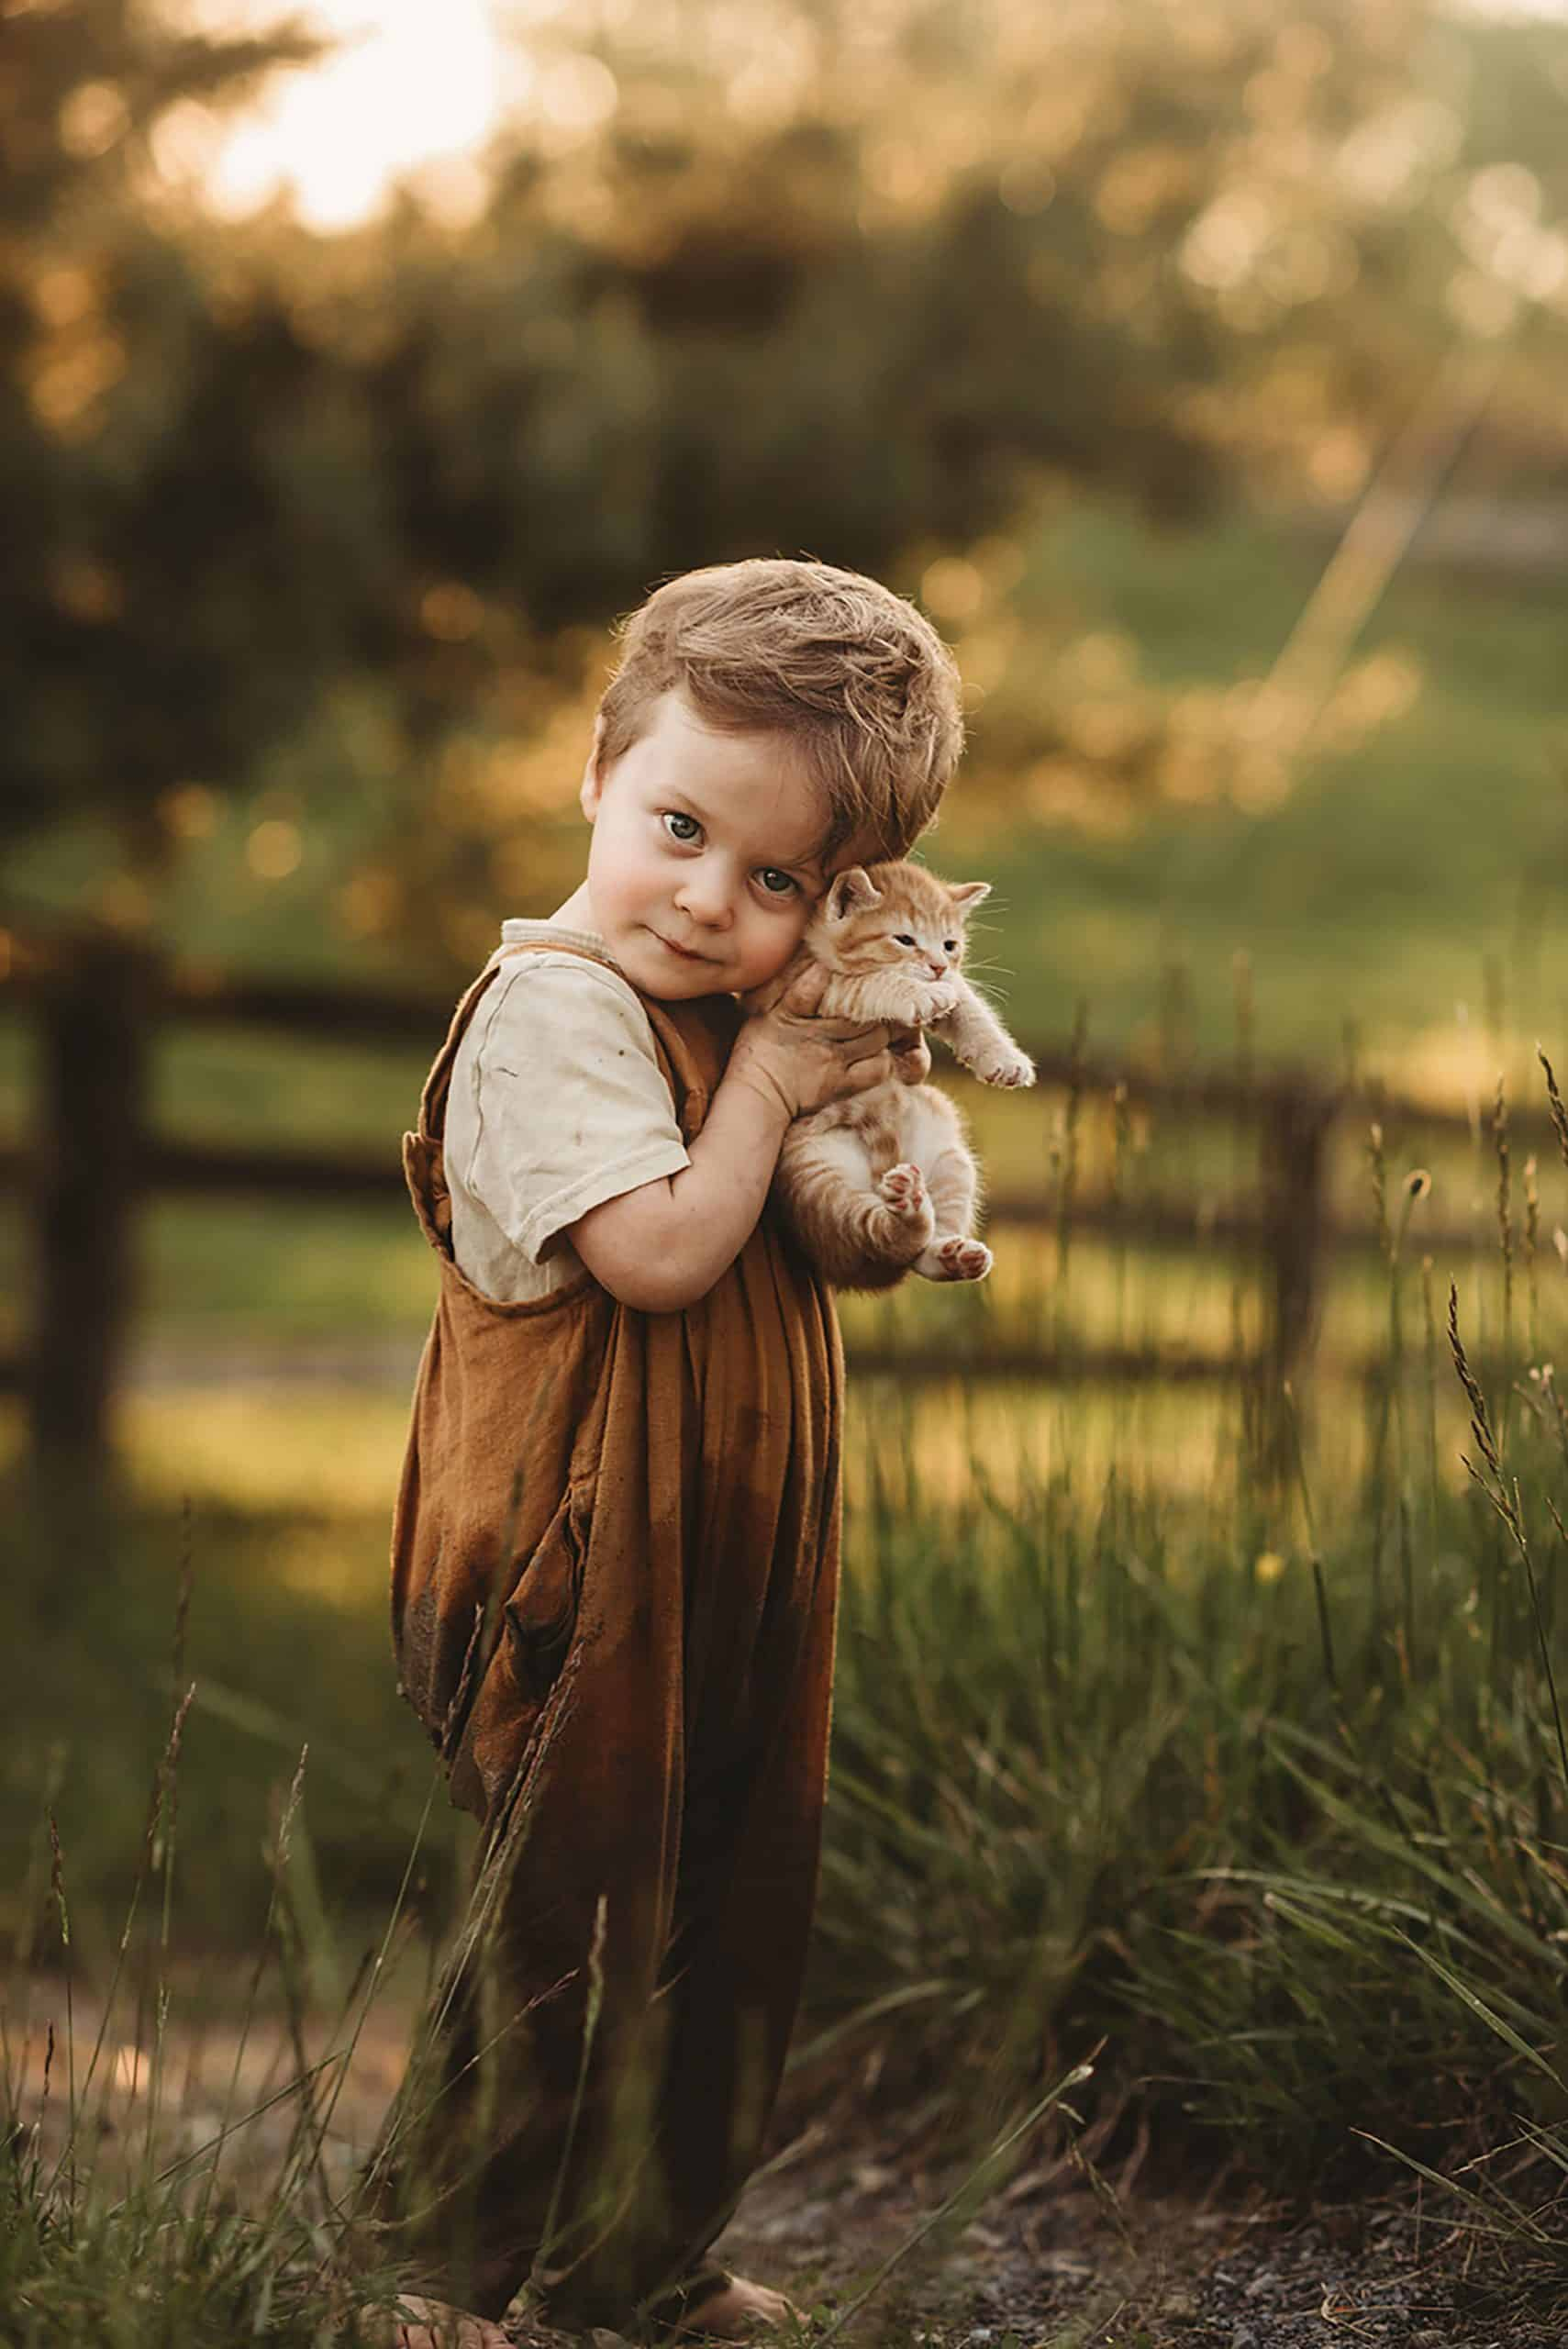 180 Stunning Kids Photos You're Going To Love!